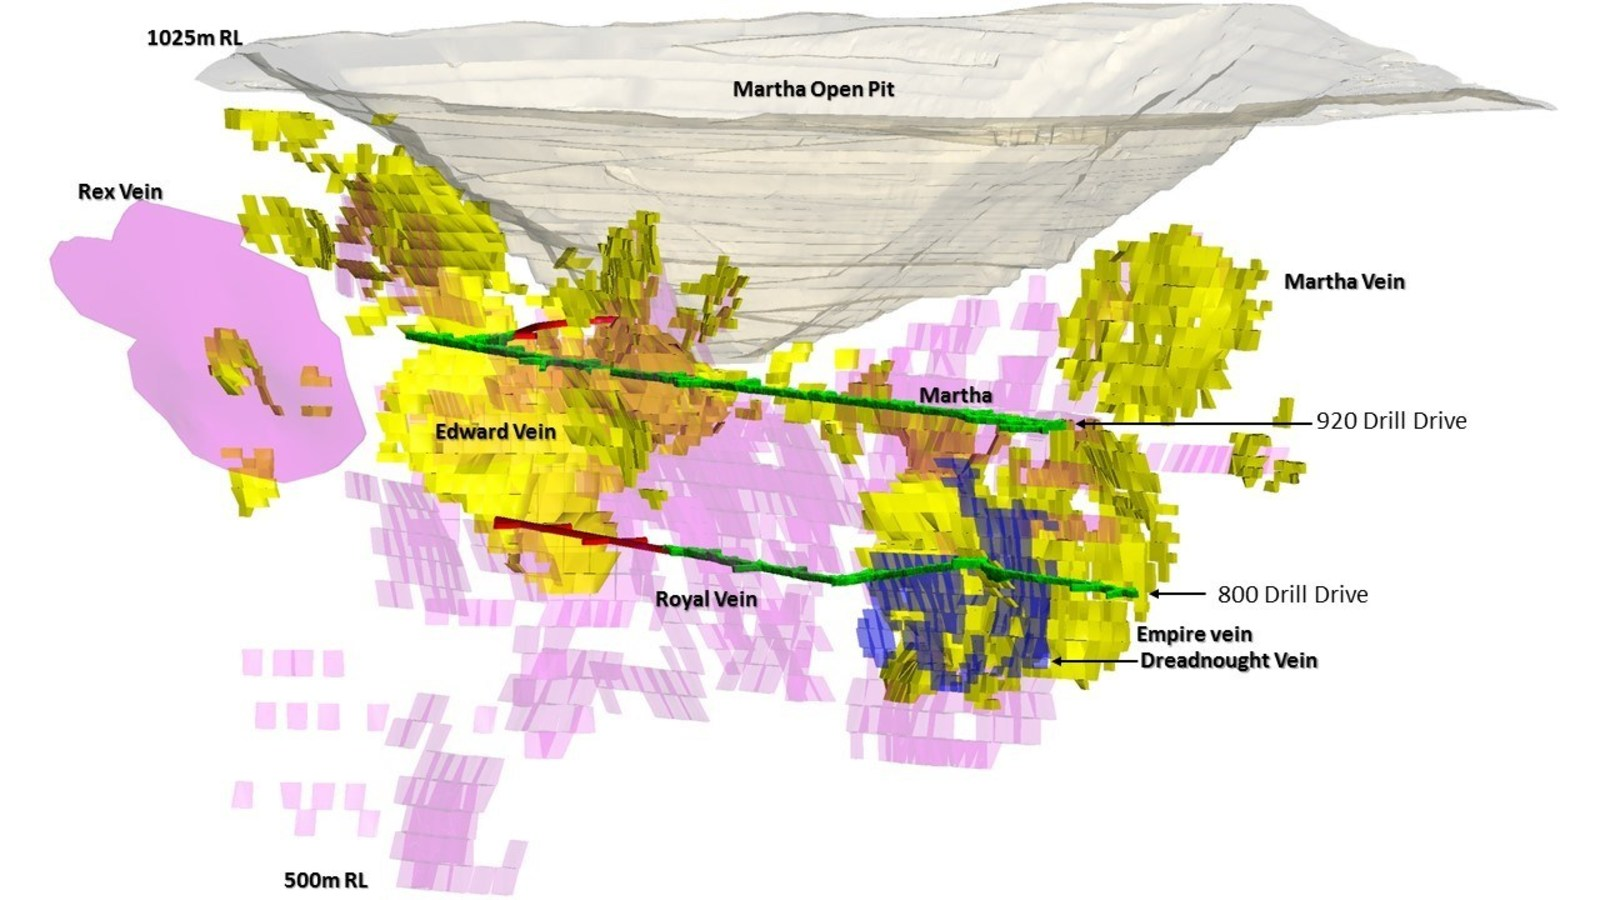 Figure 1 – Long Sectional Oblique View showing Martha Open Pit, Martha Underground, Main Target Areas, Current Martha Underground Resource Areas and the new Dreadnought vein.